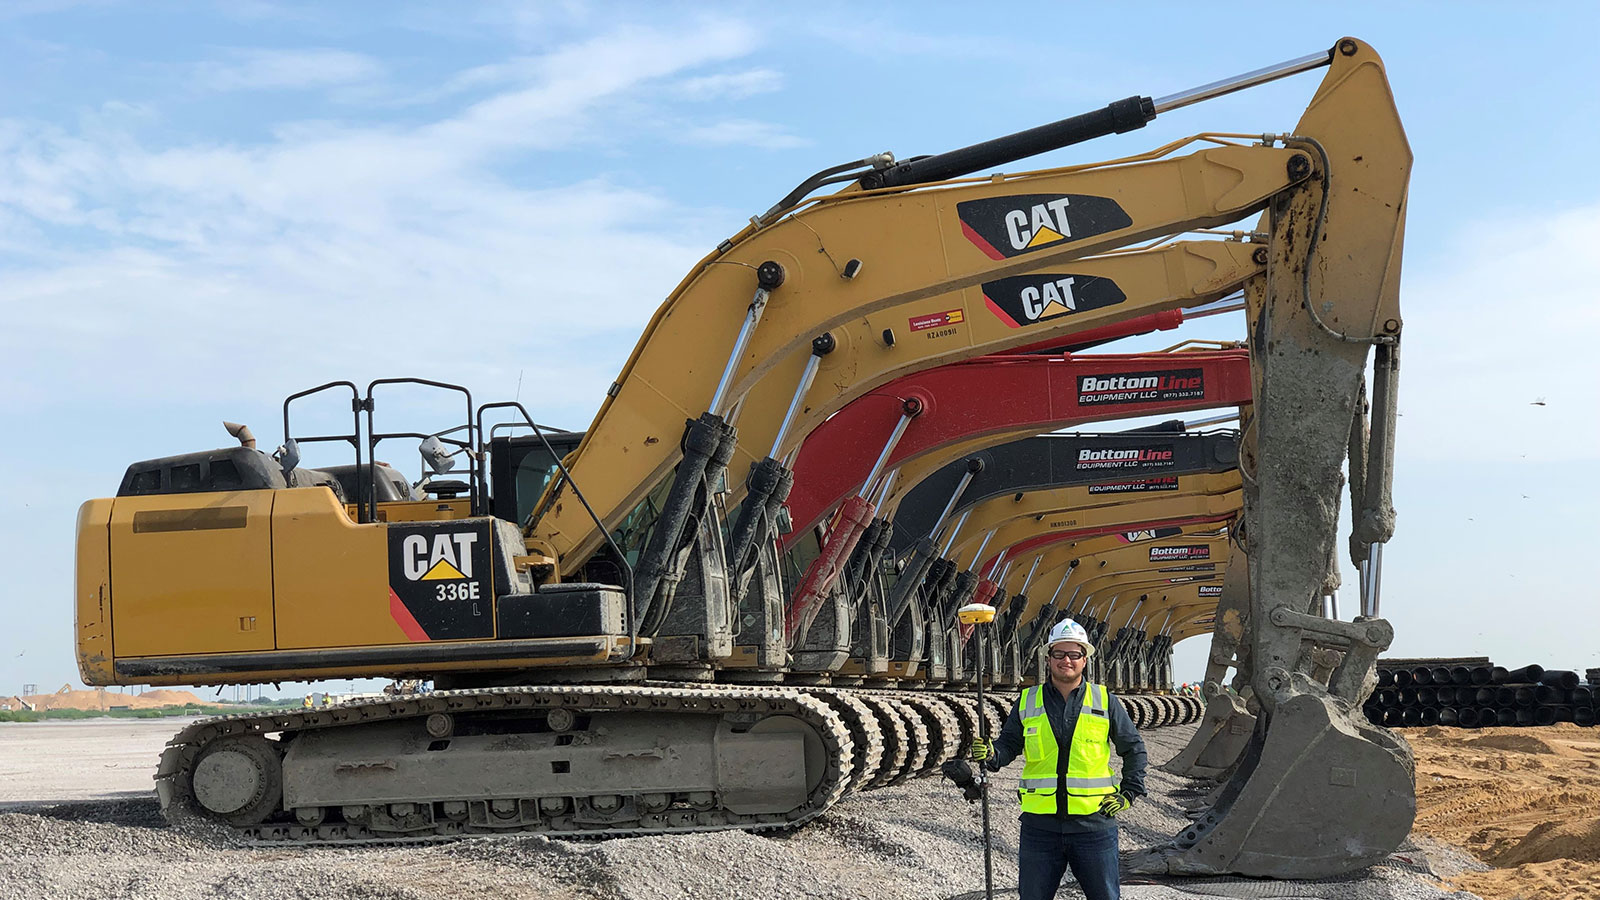 Malik Askar, a University of Nebraska–Lincoln graduate who interned with Kiewit Corp. in 2019, now works as a field engineer for Kiewit on a multi-billion-dollar liquified natural gas project.